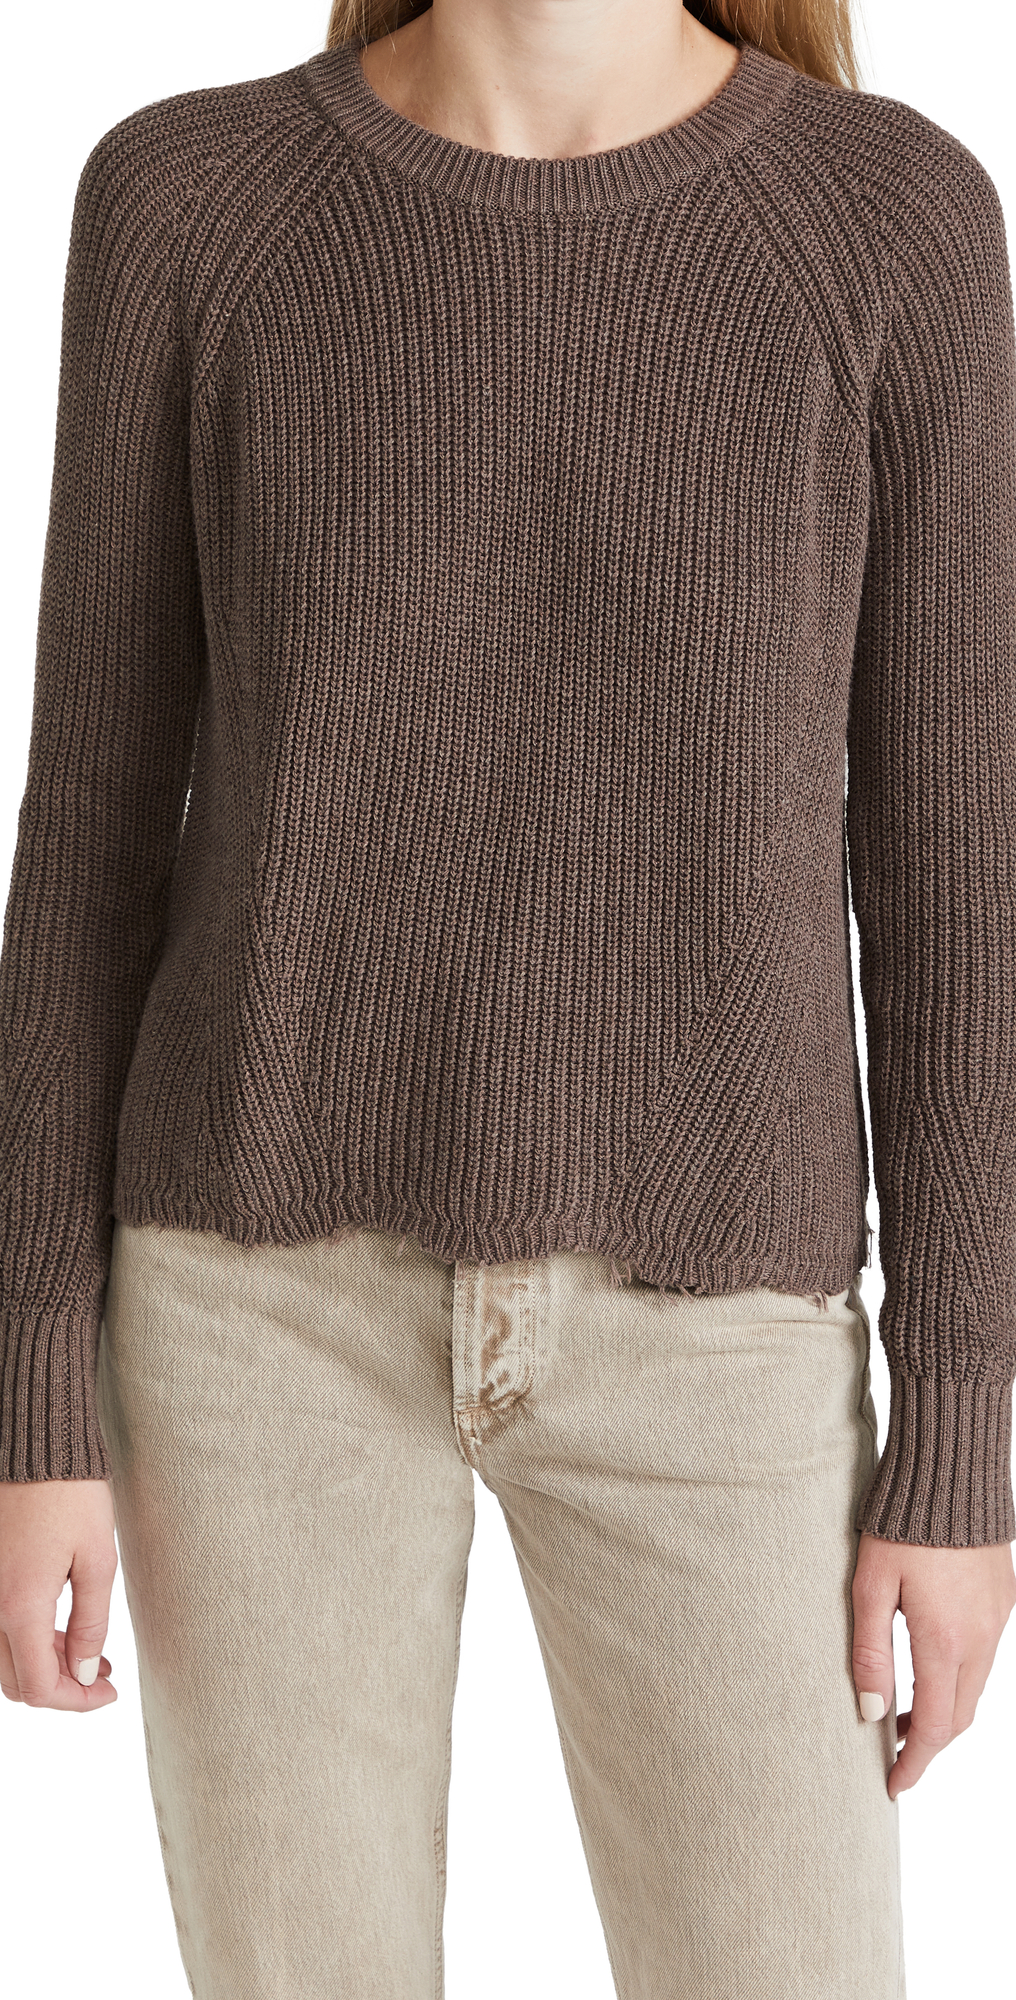 Distressed Scallop Shaker Sweater